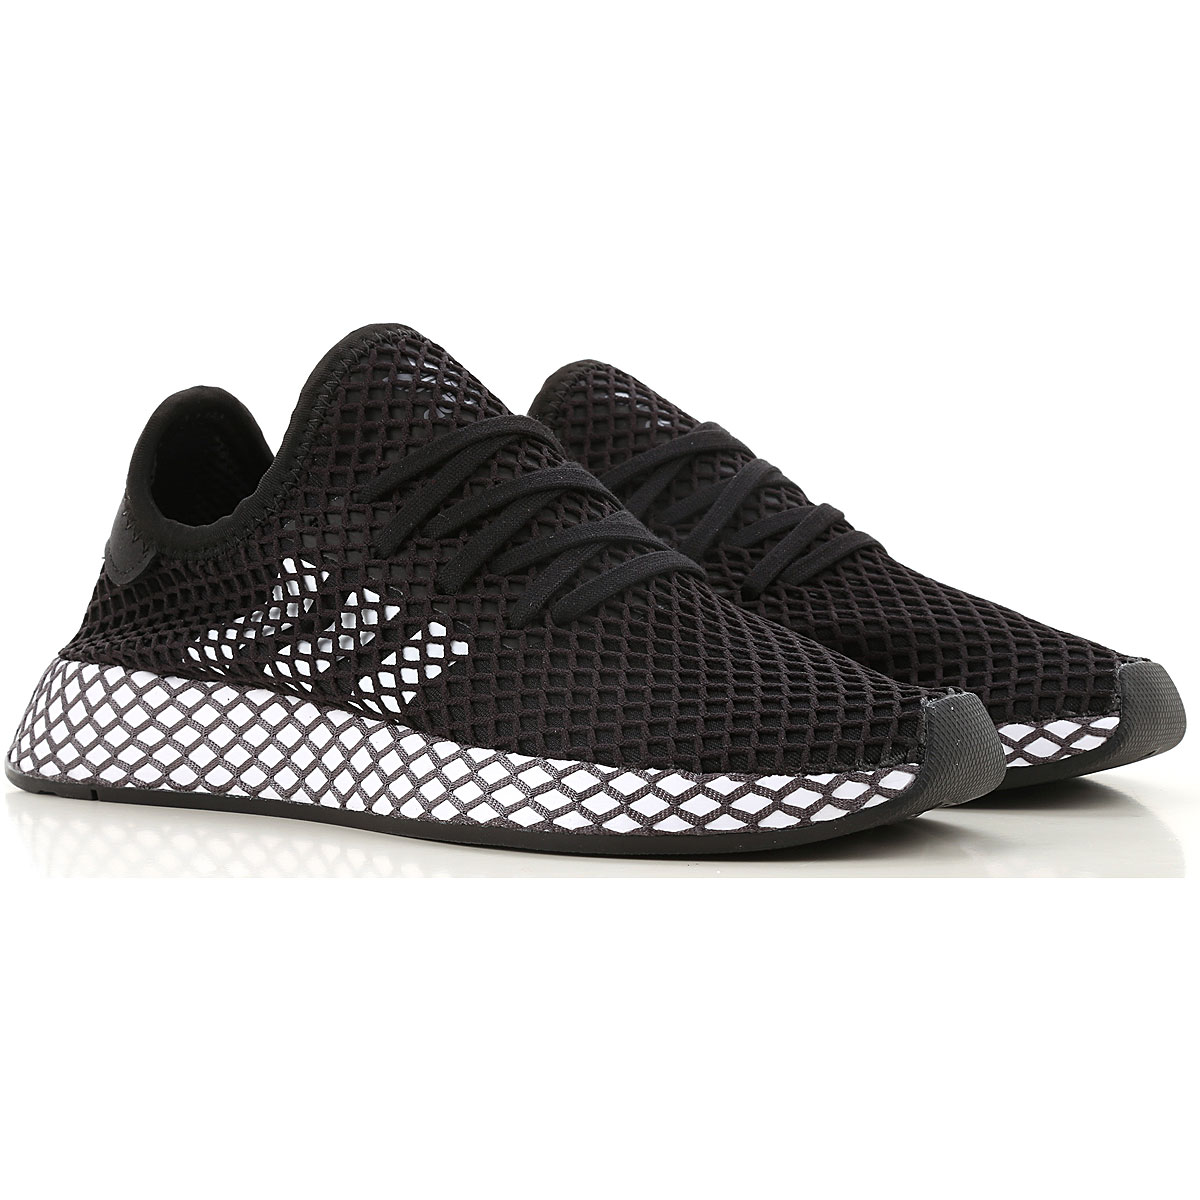 Adidas Kids Shoes for Boys On Sale, Black, Fabric, 2019, UK 3.5 - EUR 36 UK 4.5 - EUR 37.5 UK 5.5 - EUR 38.5 UK 6 - EUR 39 Child 2.5 - Ita 34